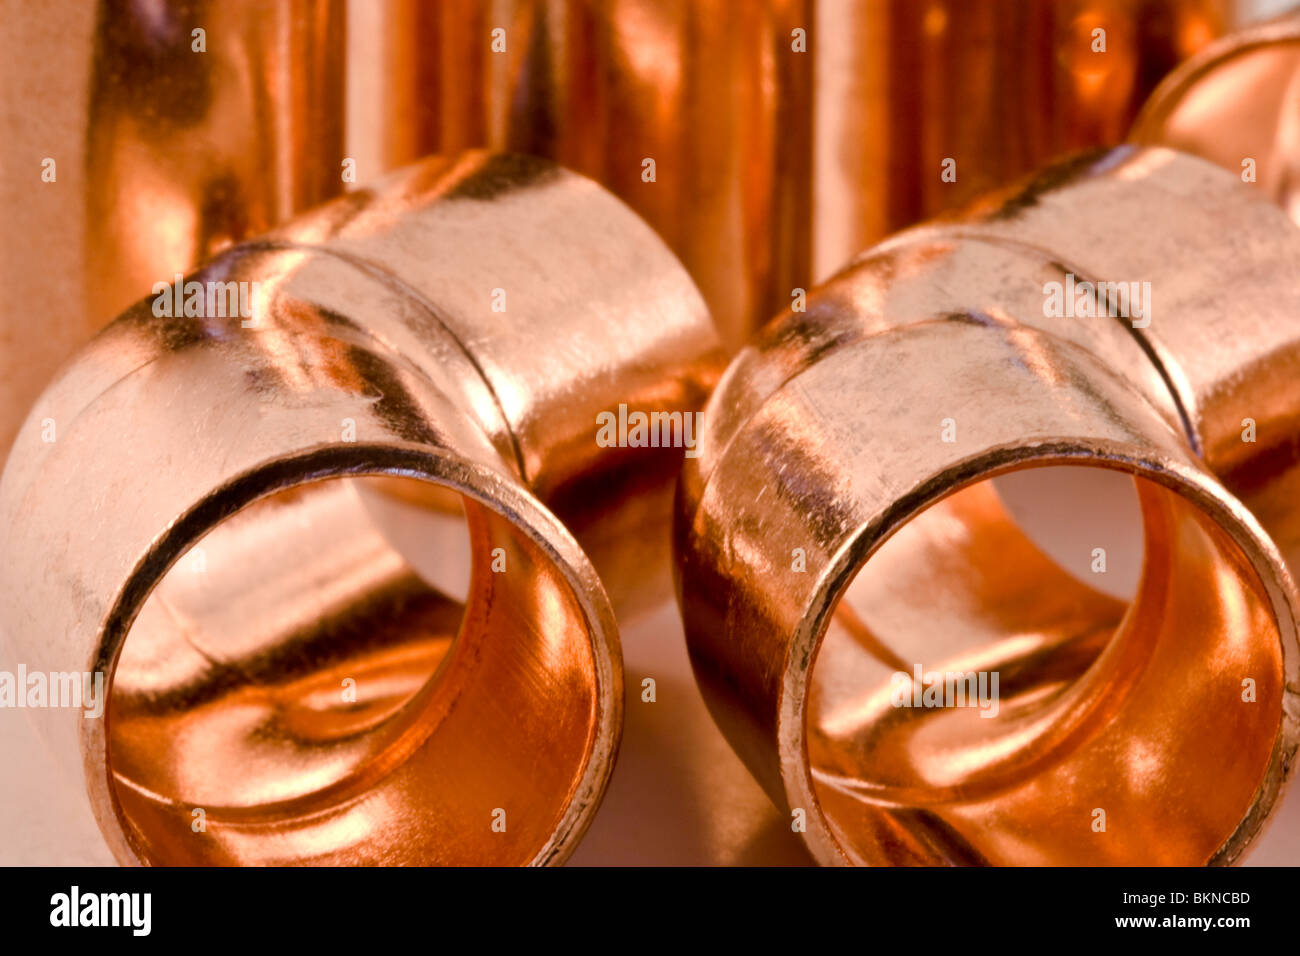 Closeup image of copper fittings used in the plumbing trade - Stock Image